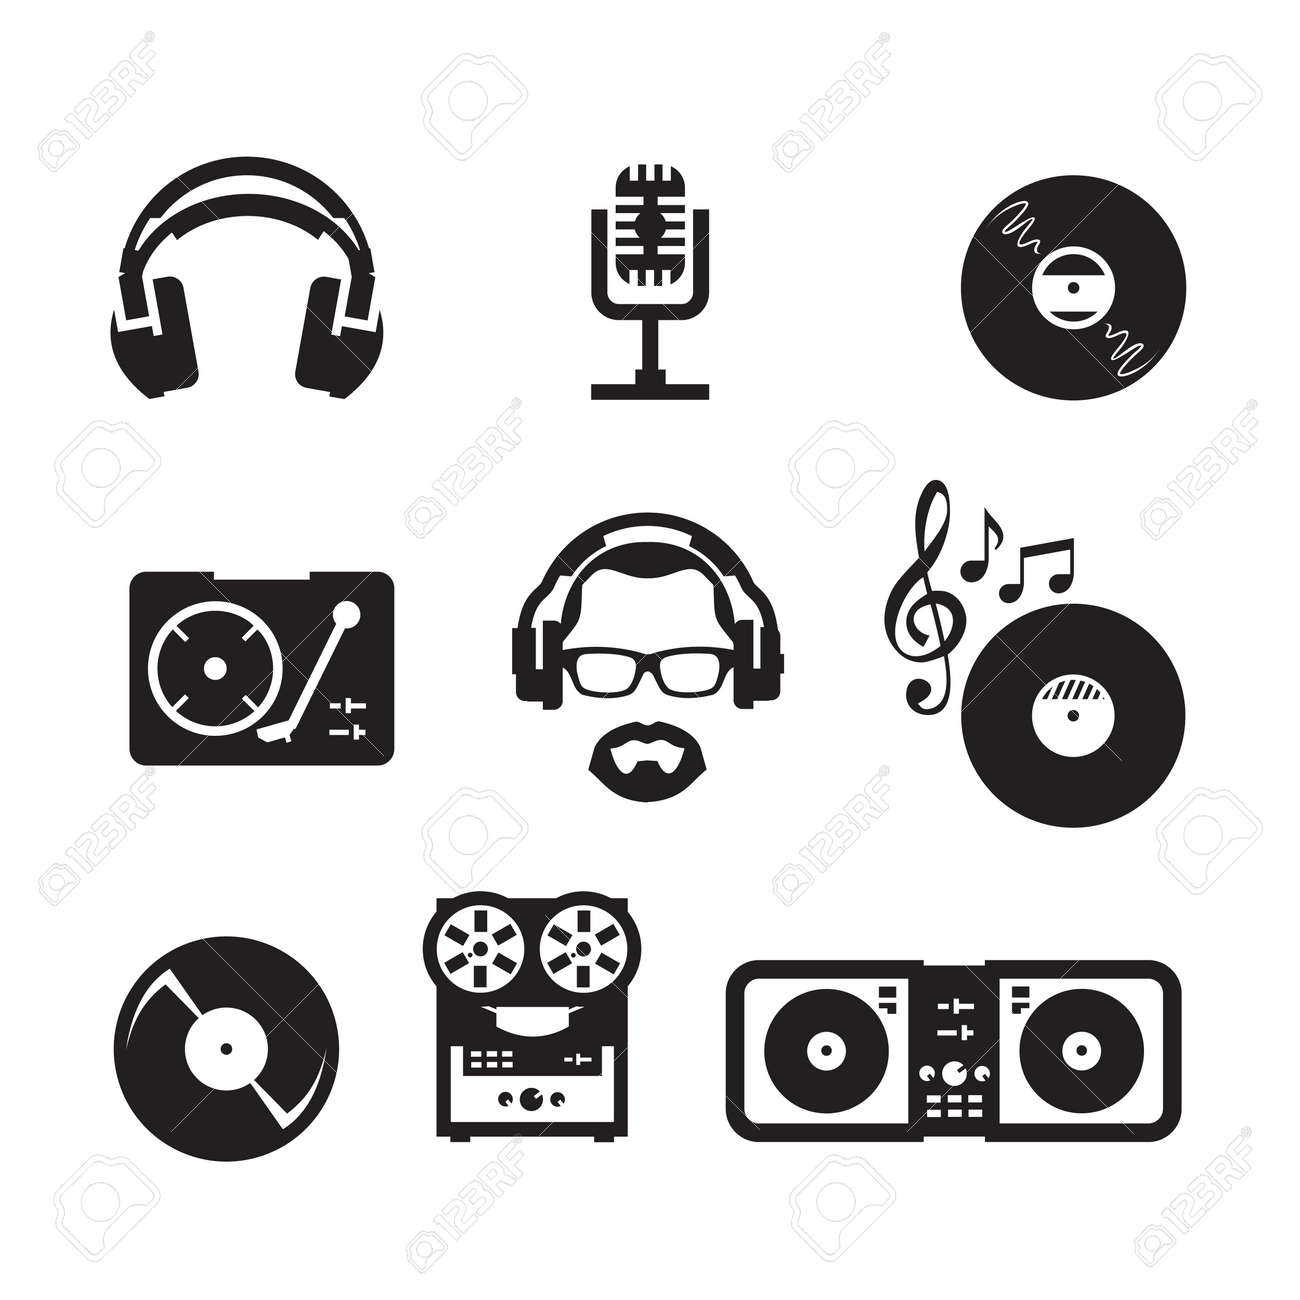 music vector format royalty free cliparts vectors and stock rh 123rf com vector music symbol vector musical notes